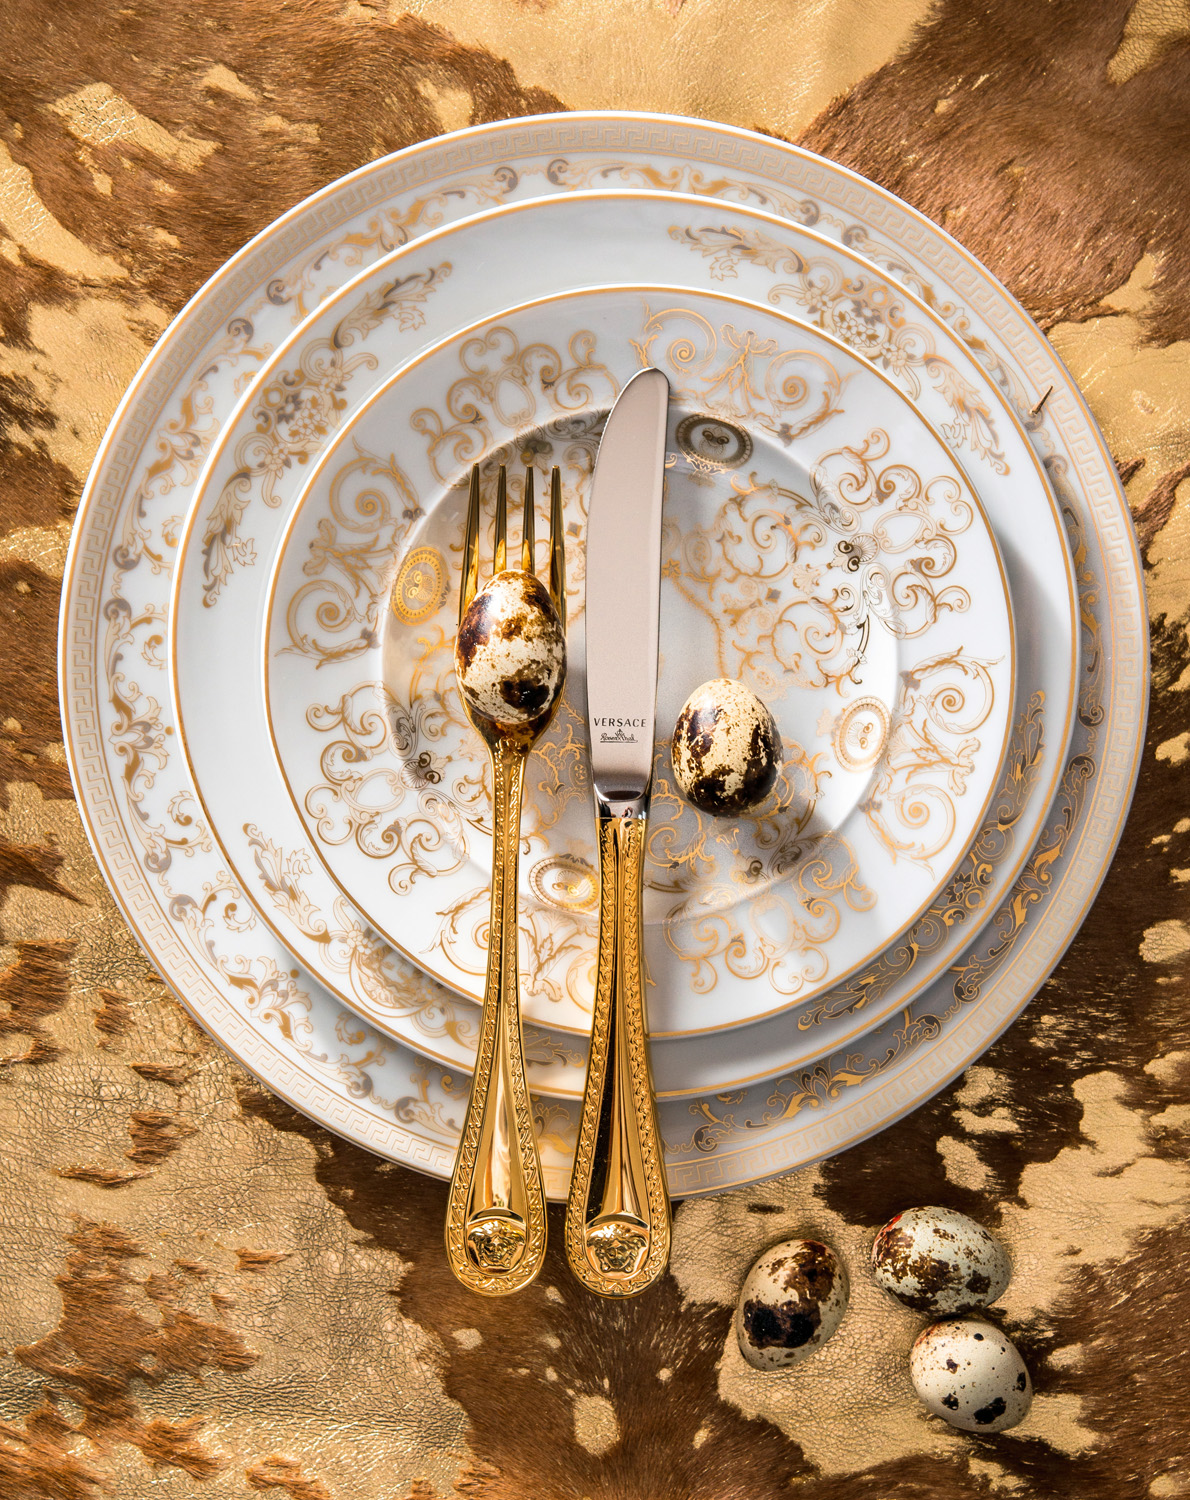 Versace Home Medusa gala 18cm, 22cm and 27cm plates and Medusa gold dinner fork and knife